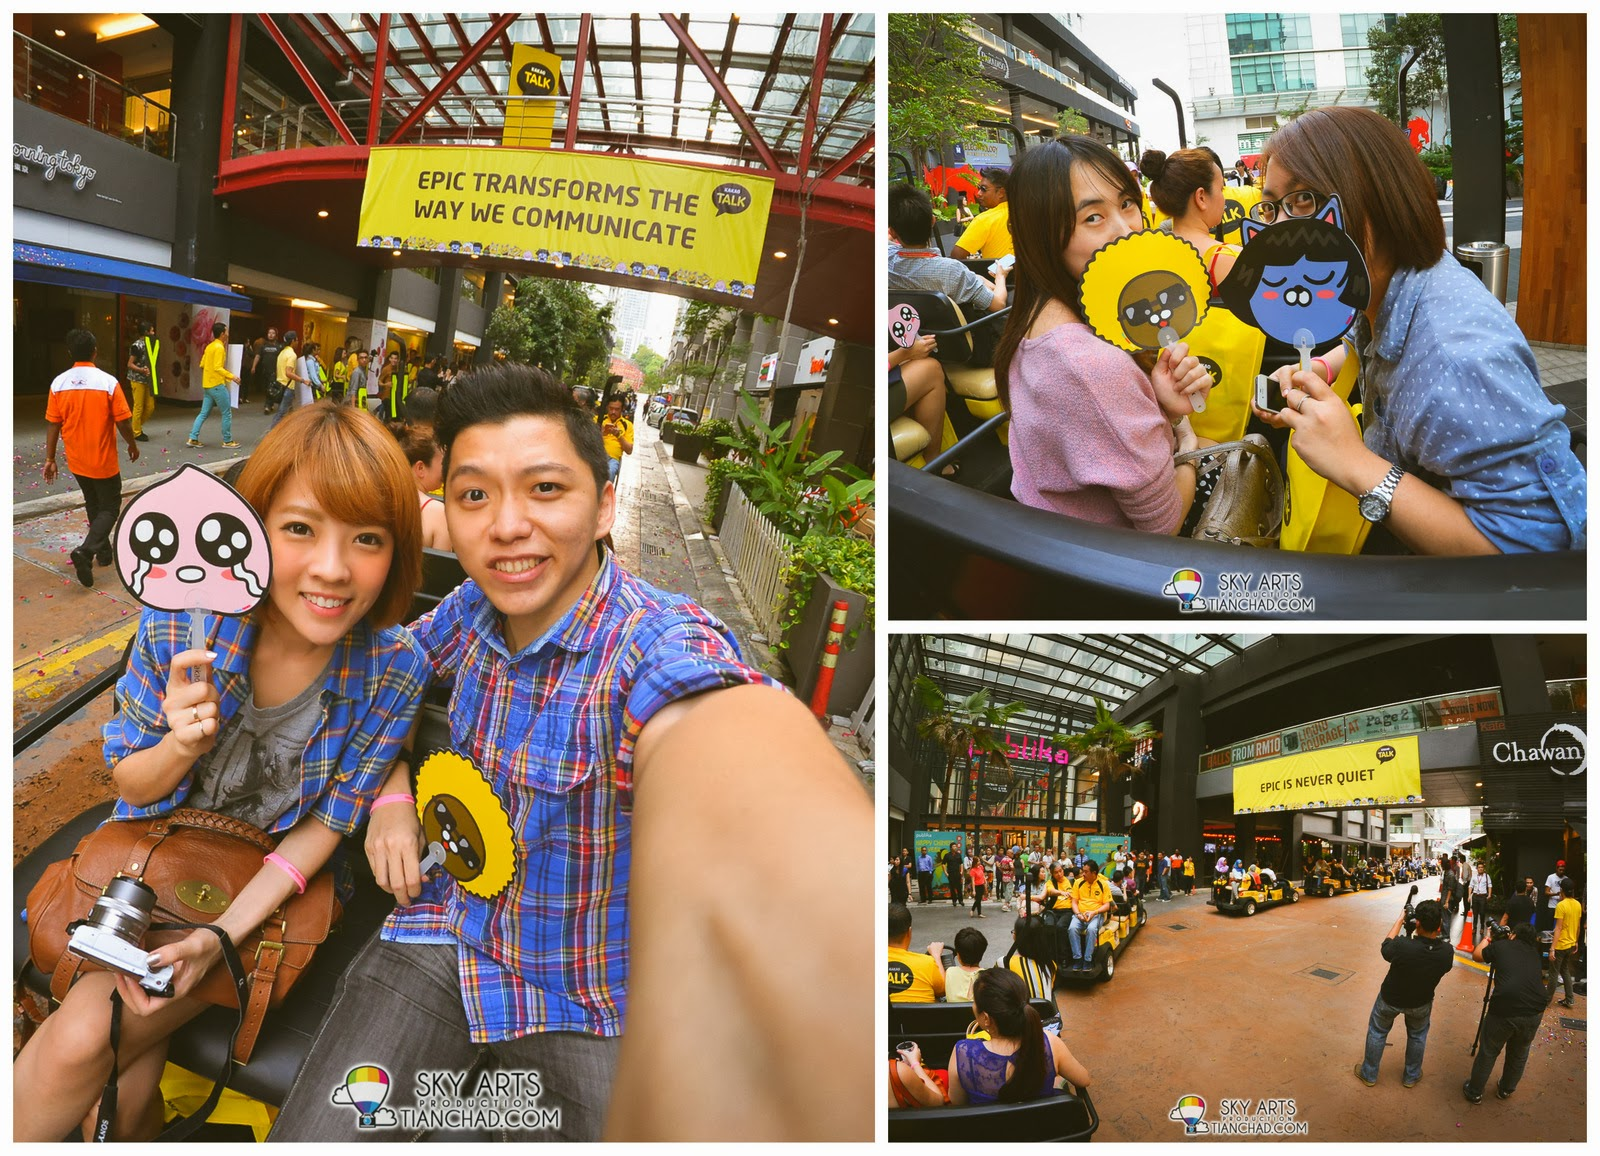 Selfie with Bobo and friends on the KakaoTalk Buggy ride